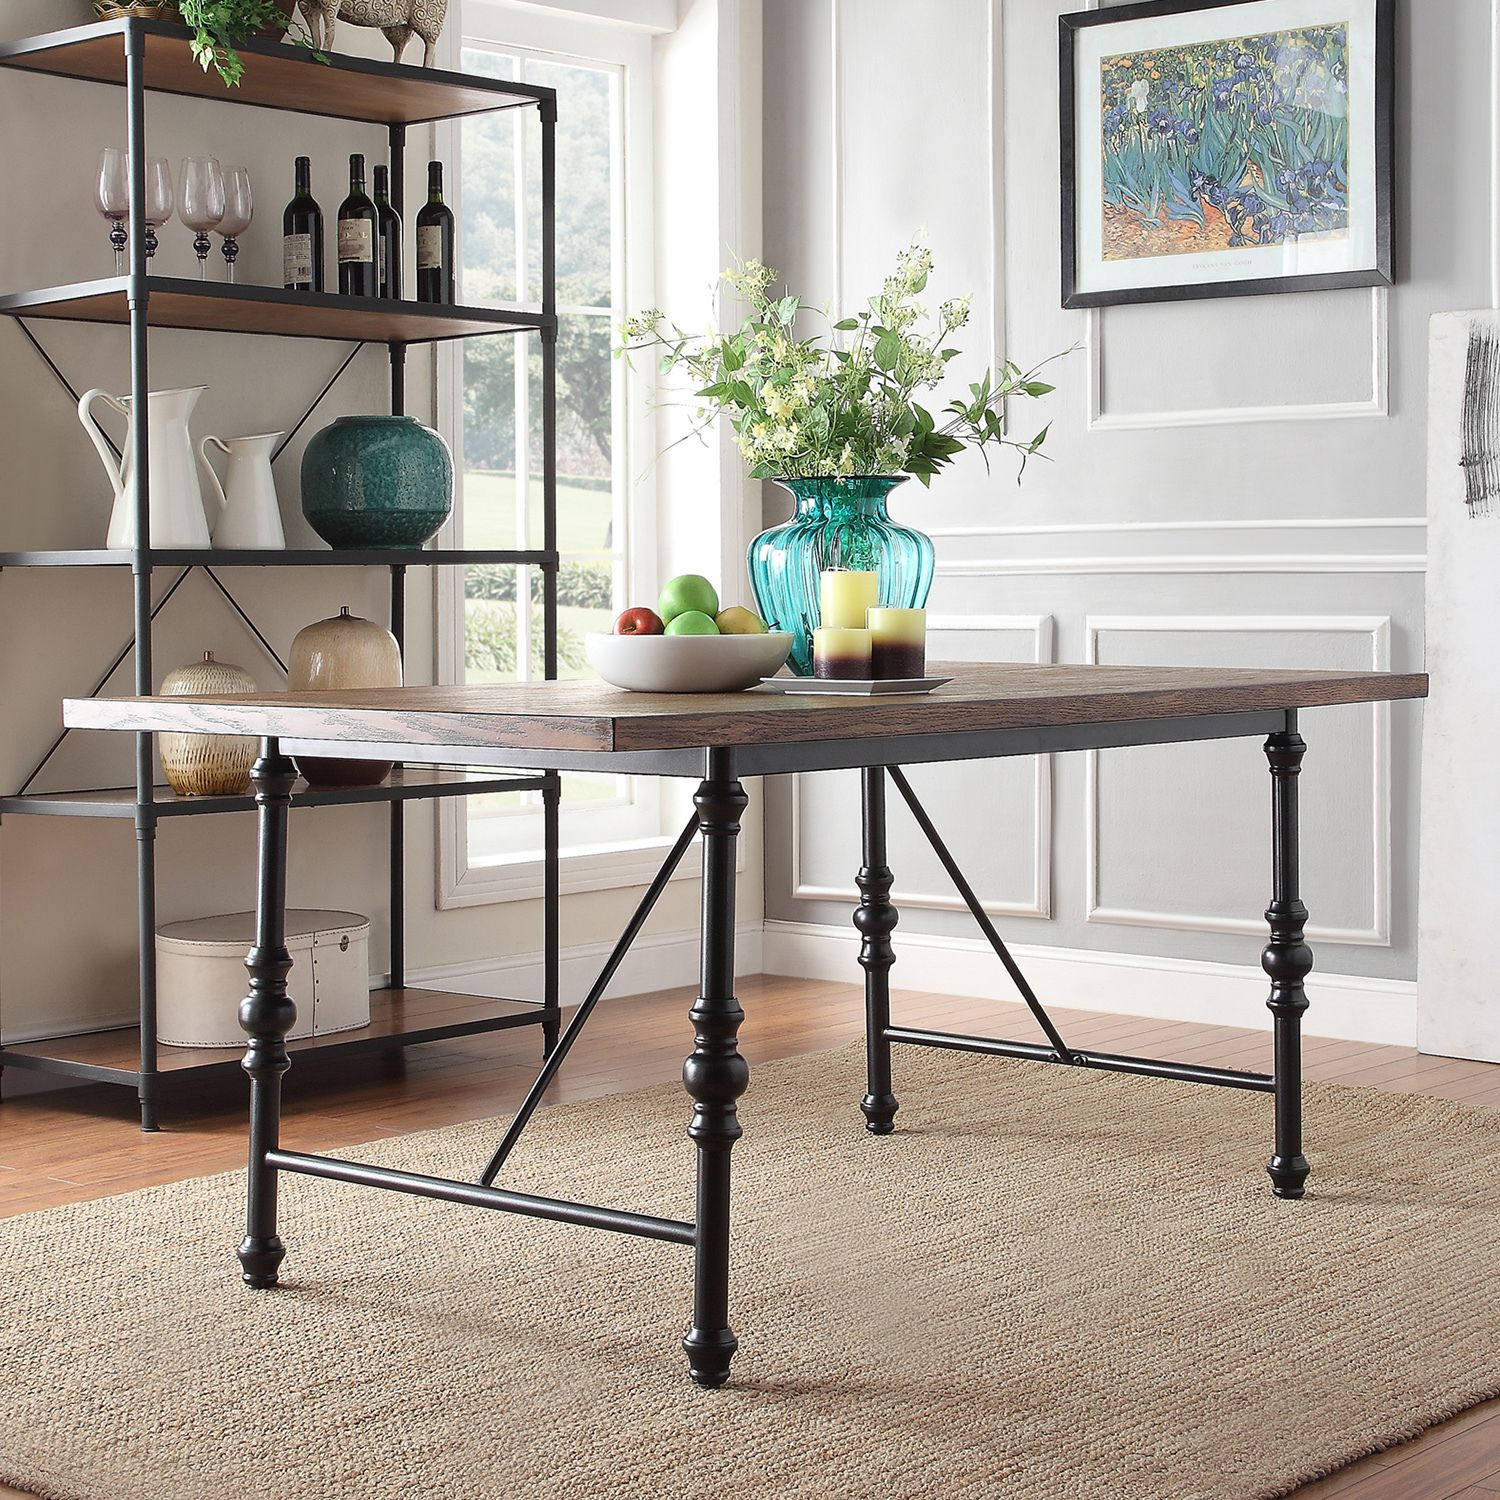 Replace Table Top With Marble. Nelson Industrial Modern Metal Dining Table  | Overstock.com